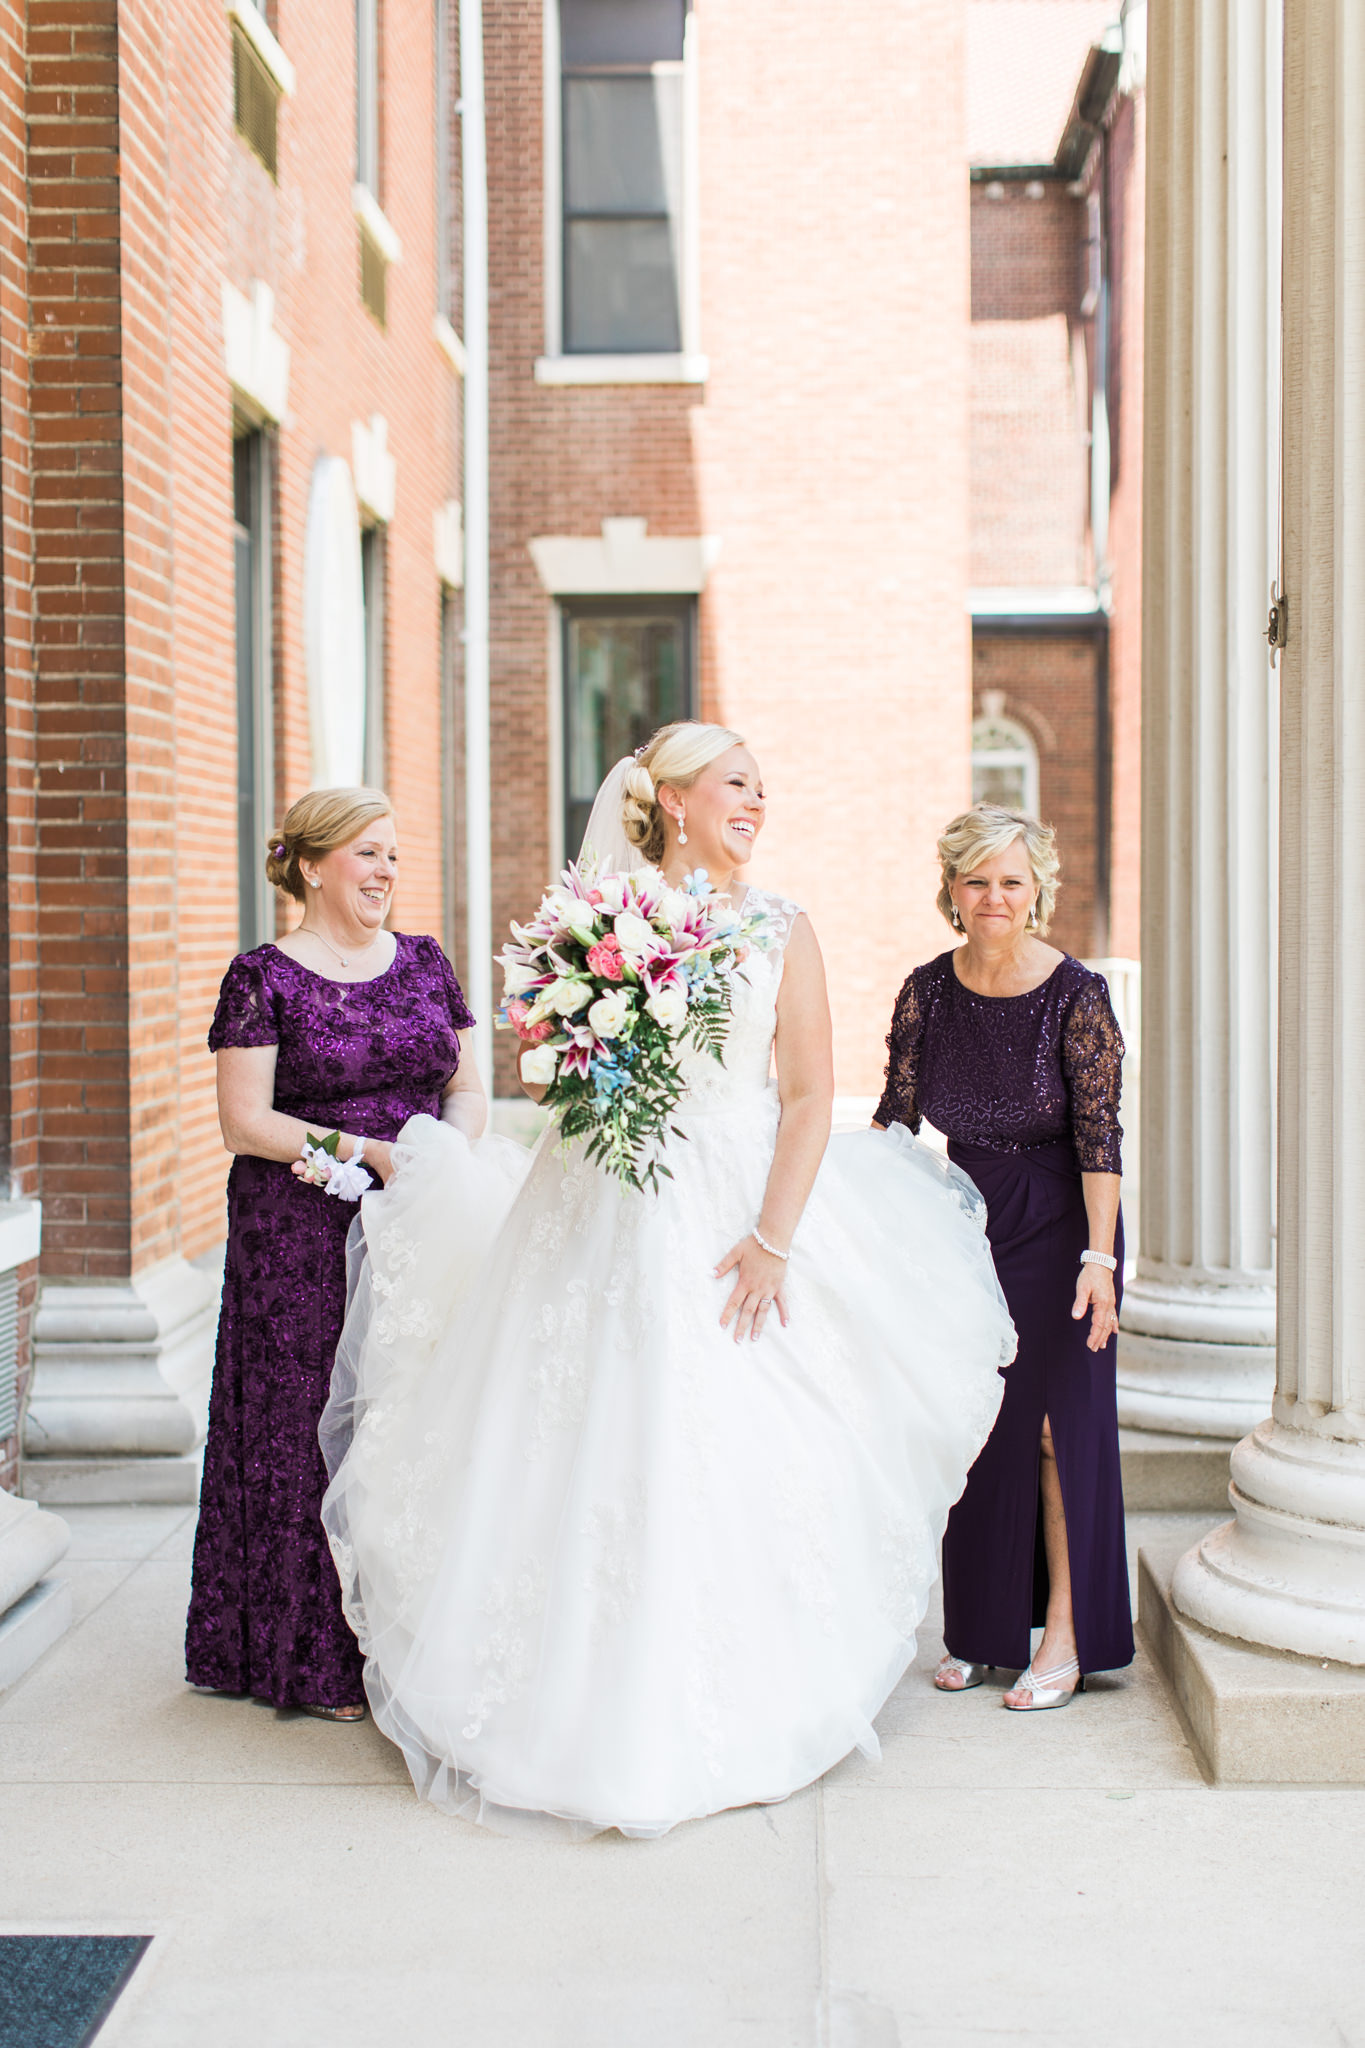 Mother of the Bride laughing with the Bride and the Mother of the Groom at St. Agnes Catholic Church in Louisville Ky